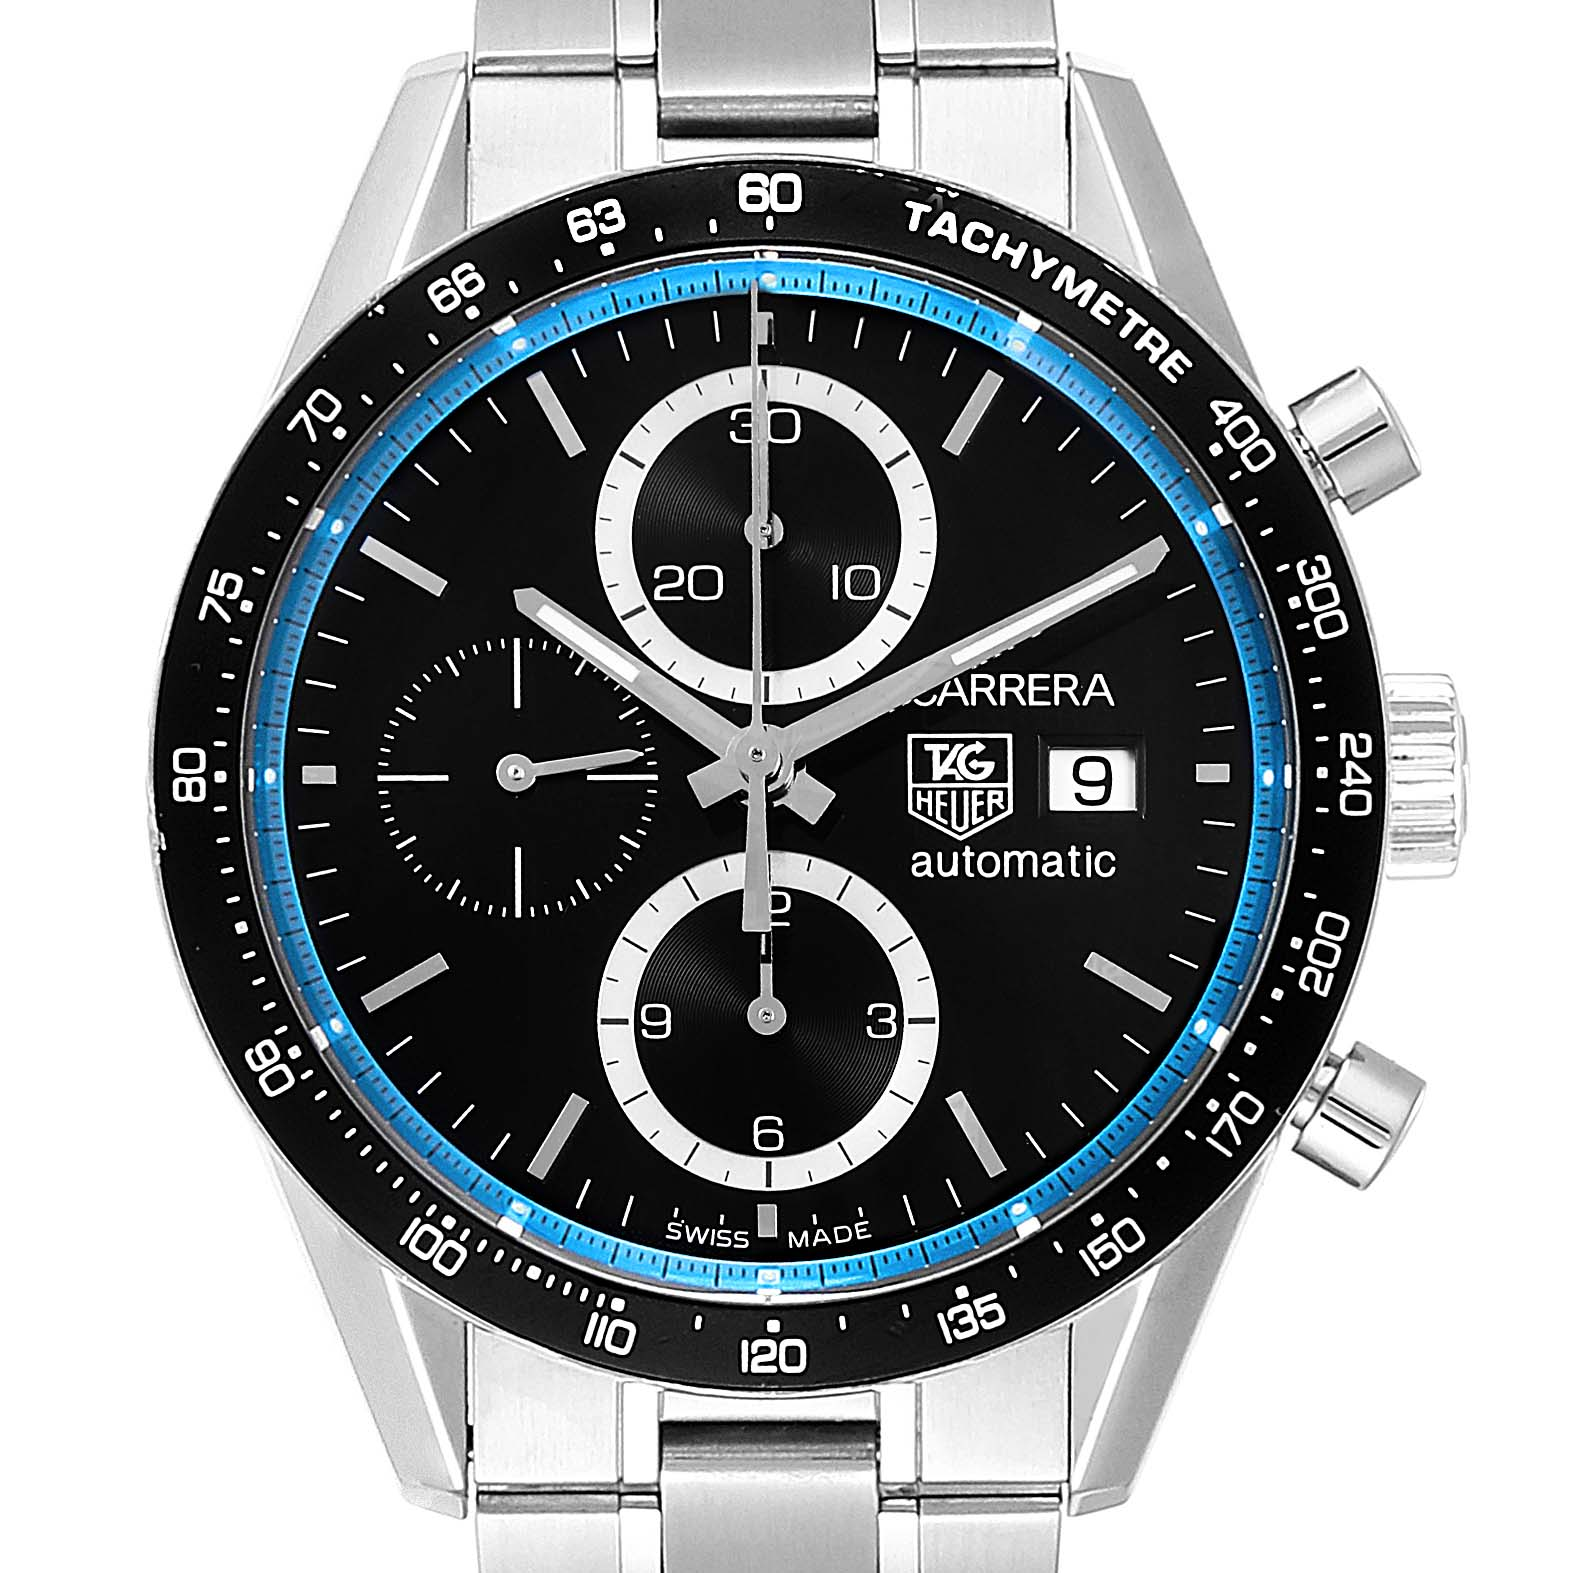 Photo of Tag Heuer Carrera Ring Master Jenson Button Limited Edition Watch CV201X